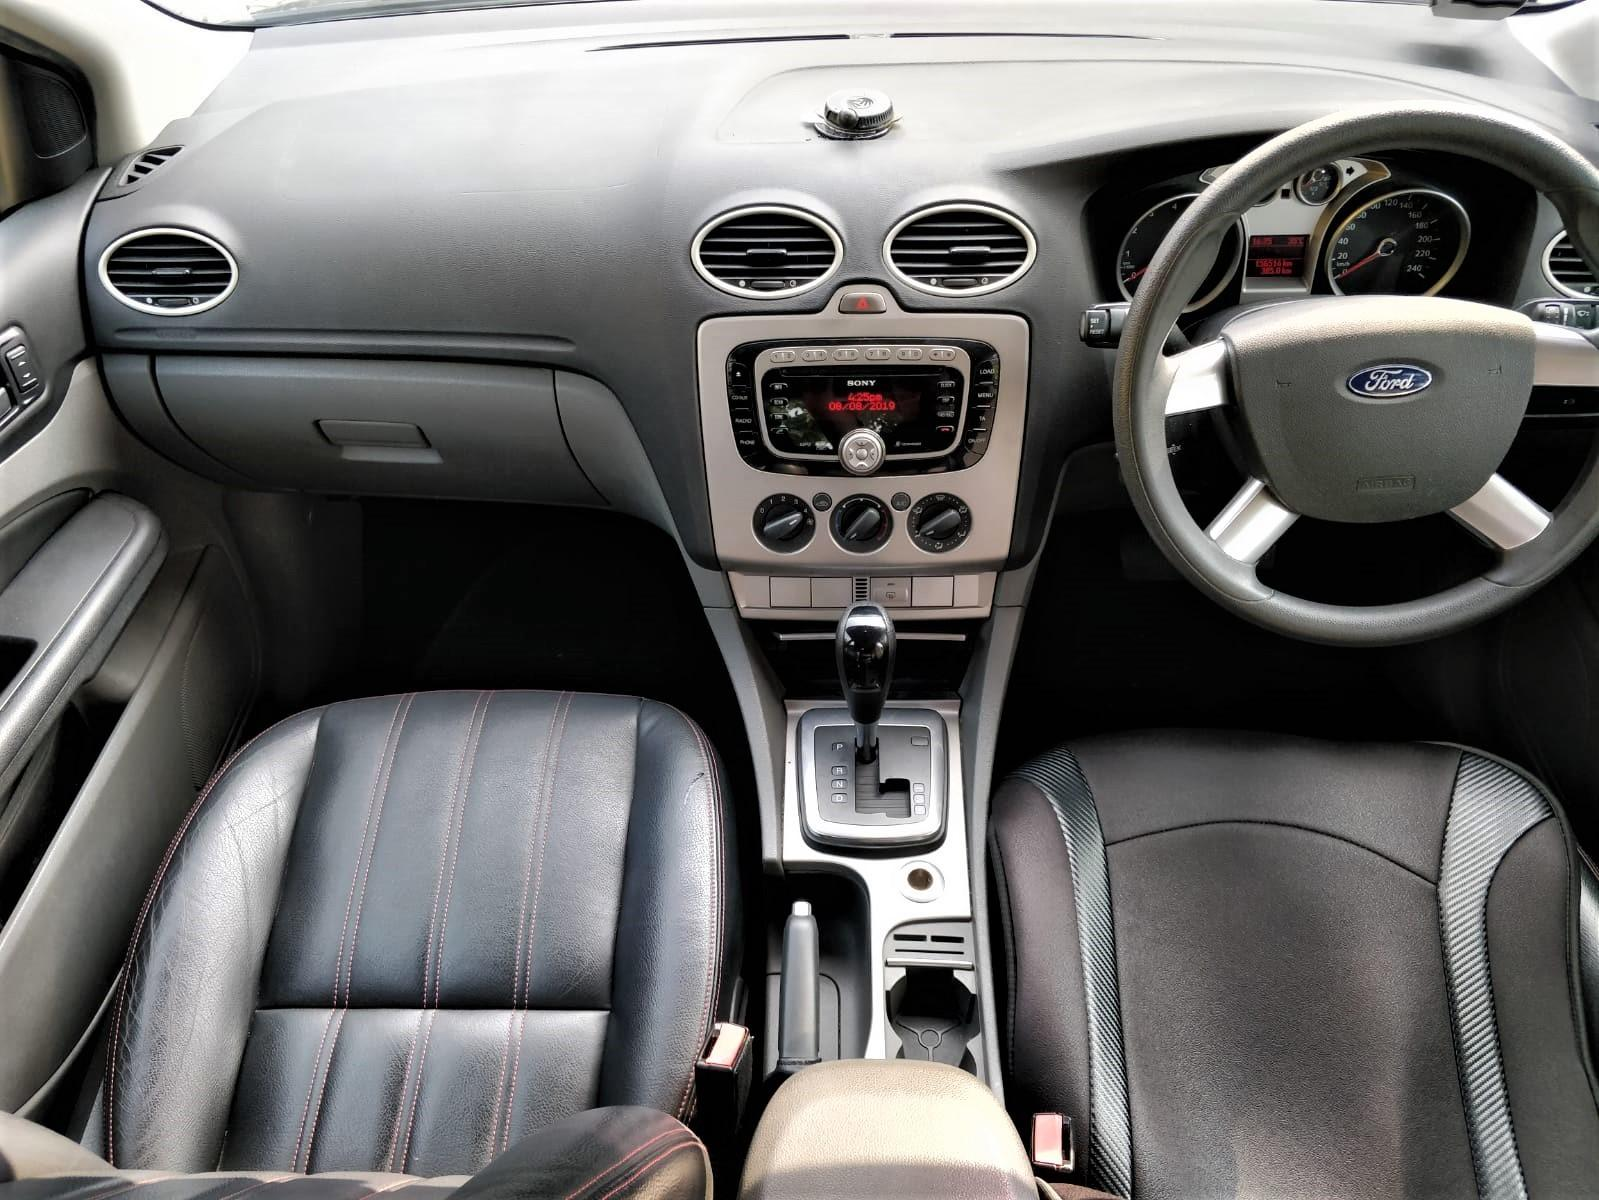 Ford Focus - Lowest rental rates, with many choices to choose from!